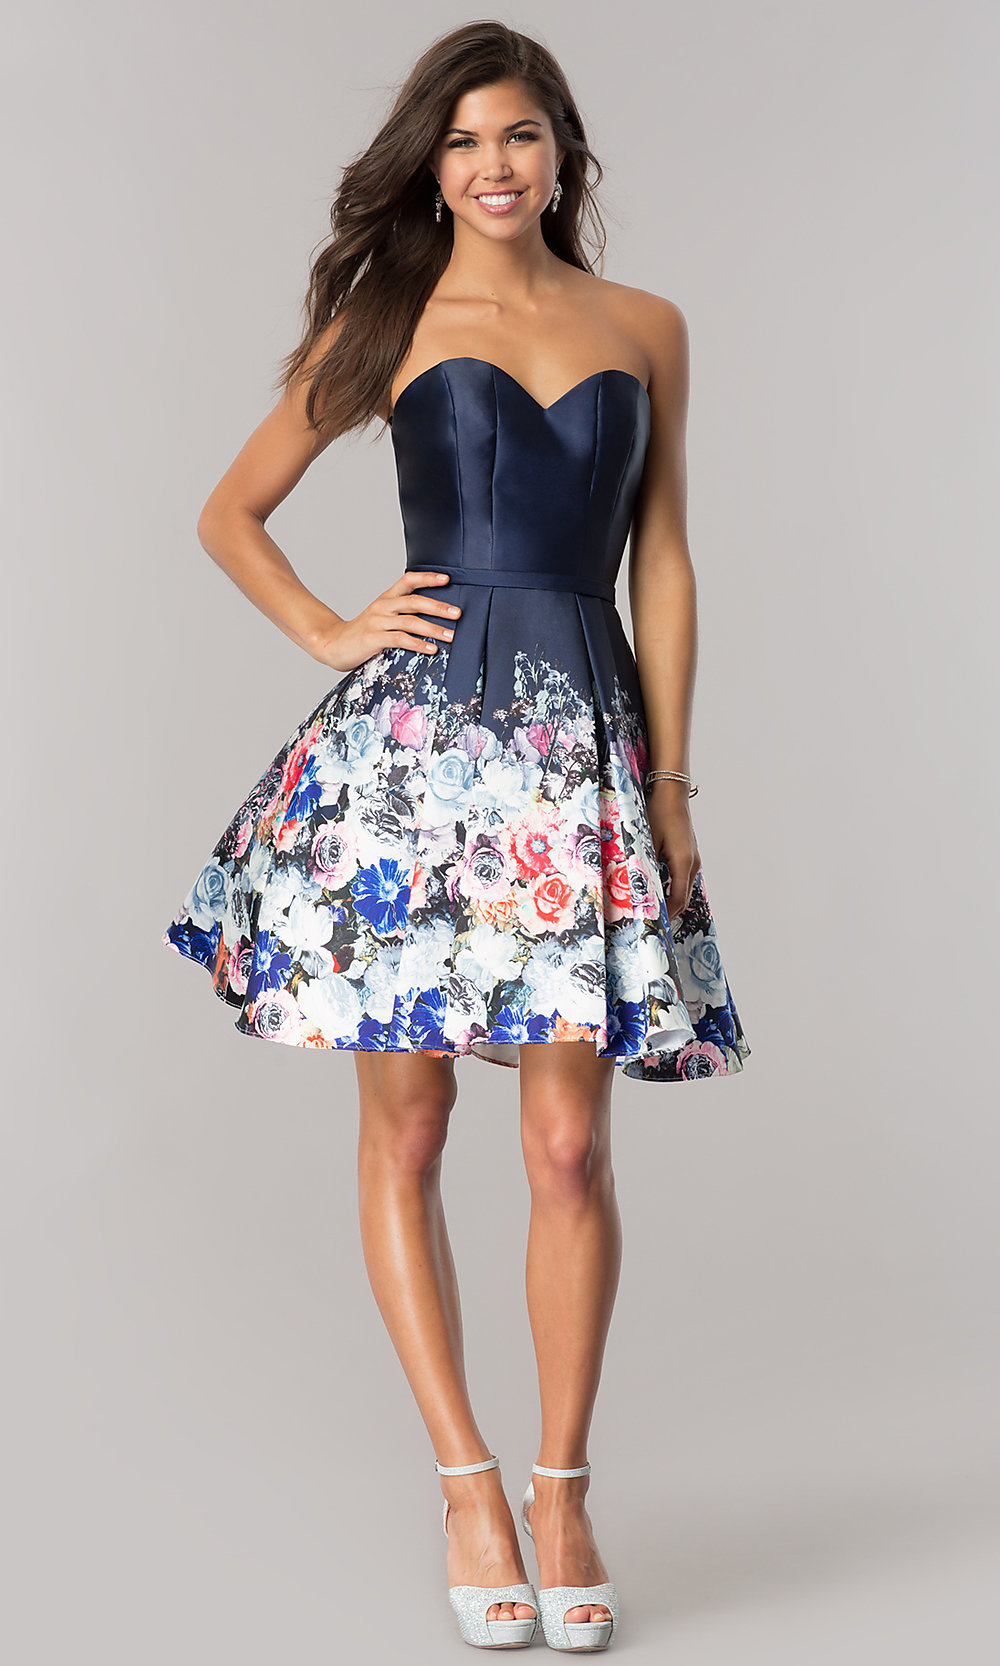 Strapless Floral Print Homecoming Dress